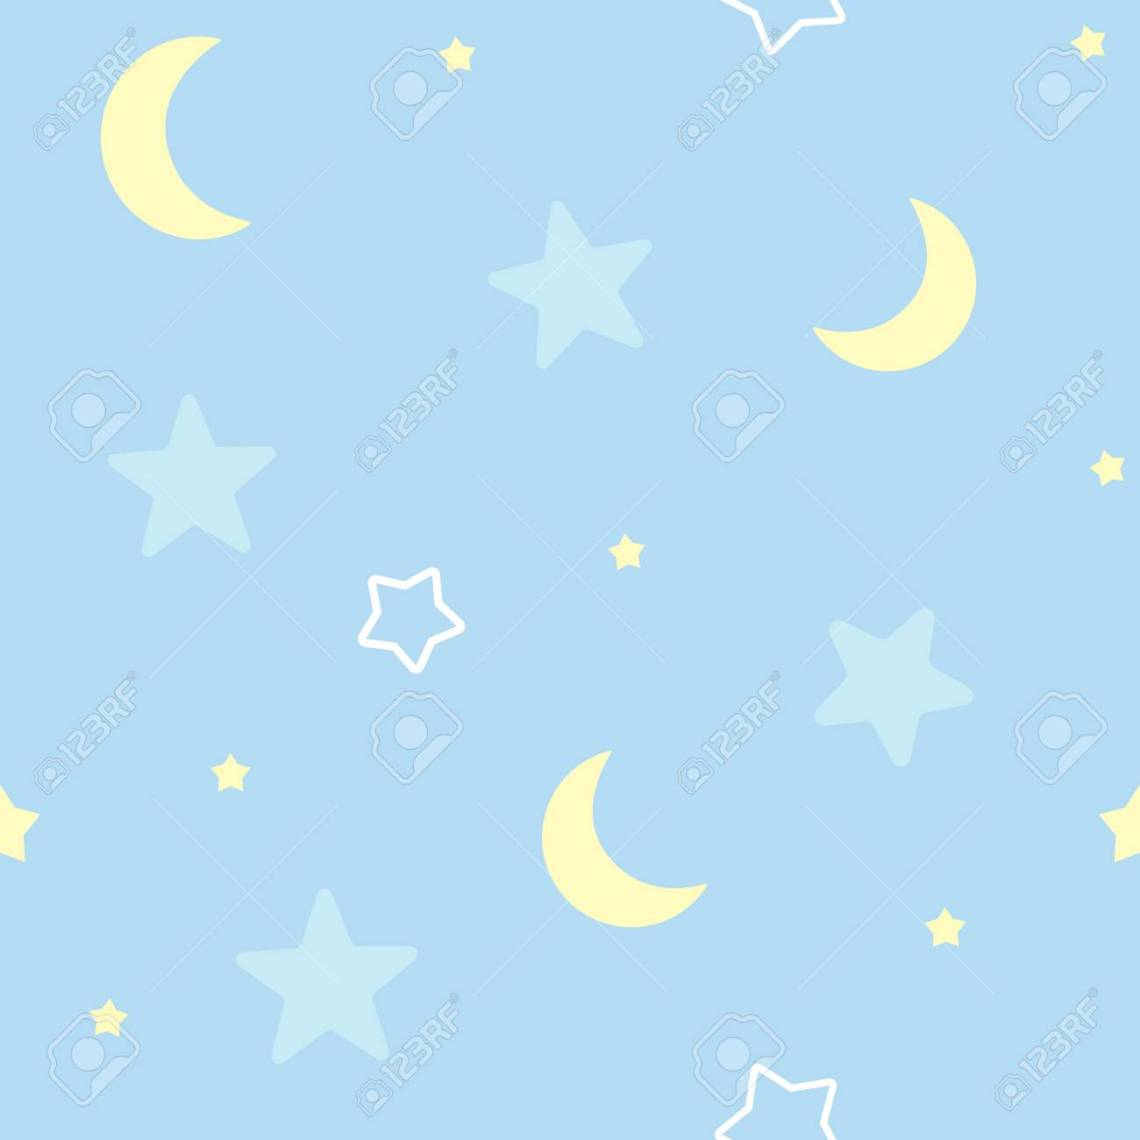 Cute Seamless Pattern Background With Stars And Moon Children S Royalty Free Cliparts Vectors And Stock Illustration Image 95526666